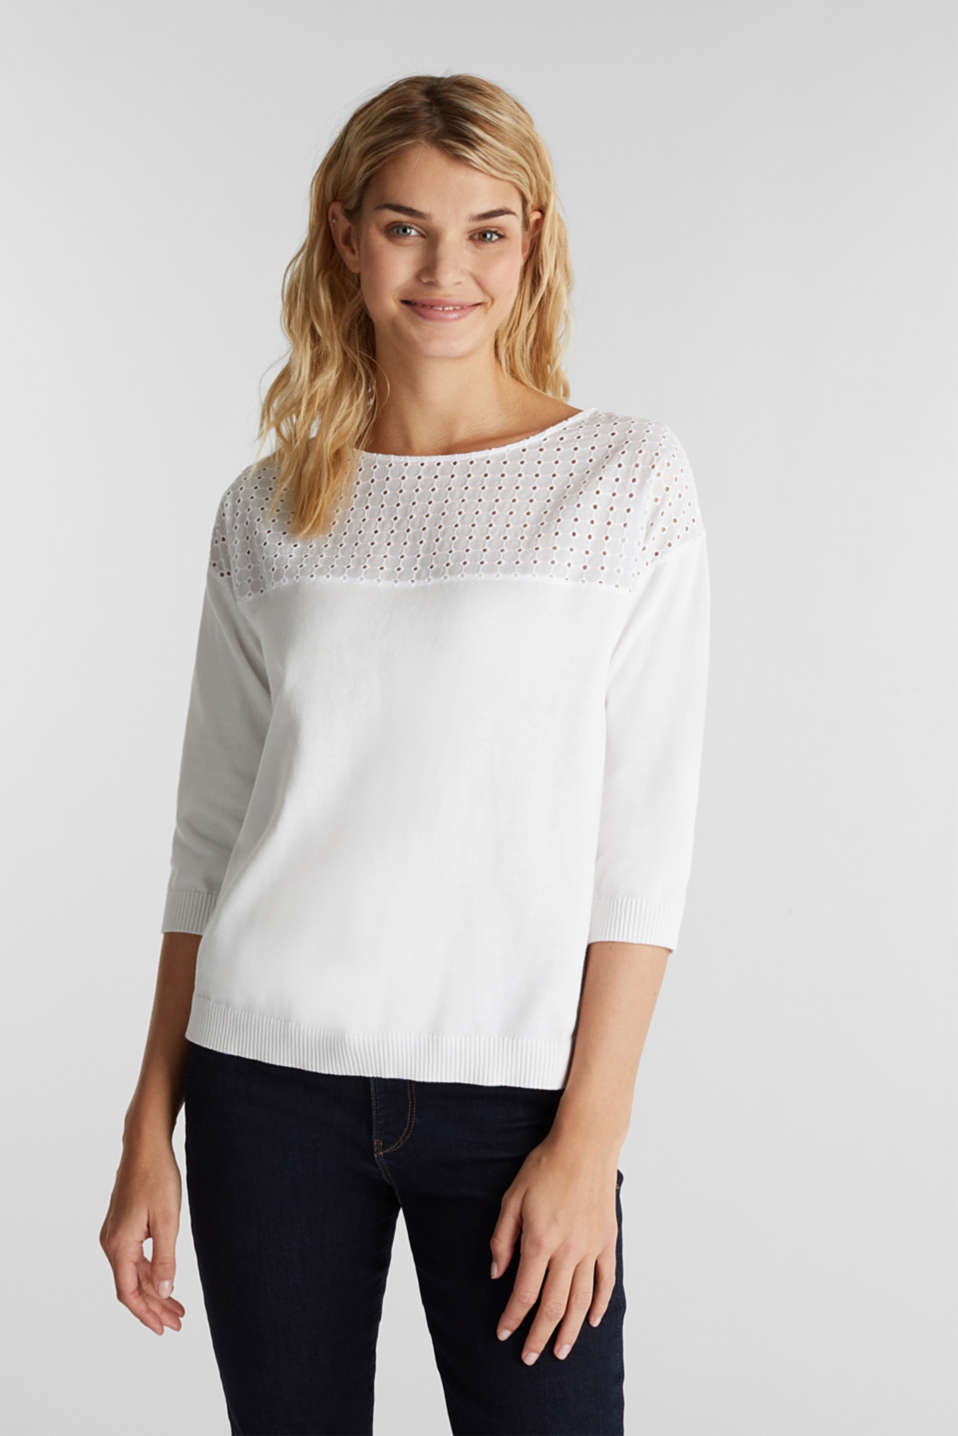 Esprit - Jumper with broderie anglaise, 100% cotton